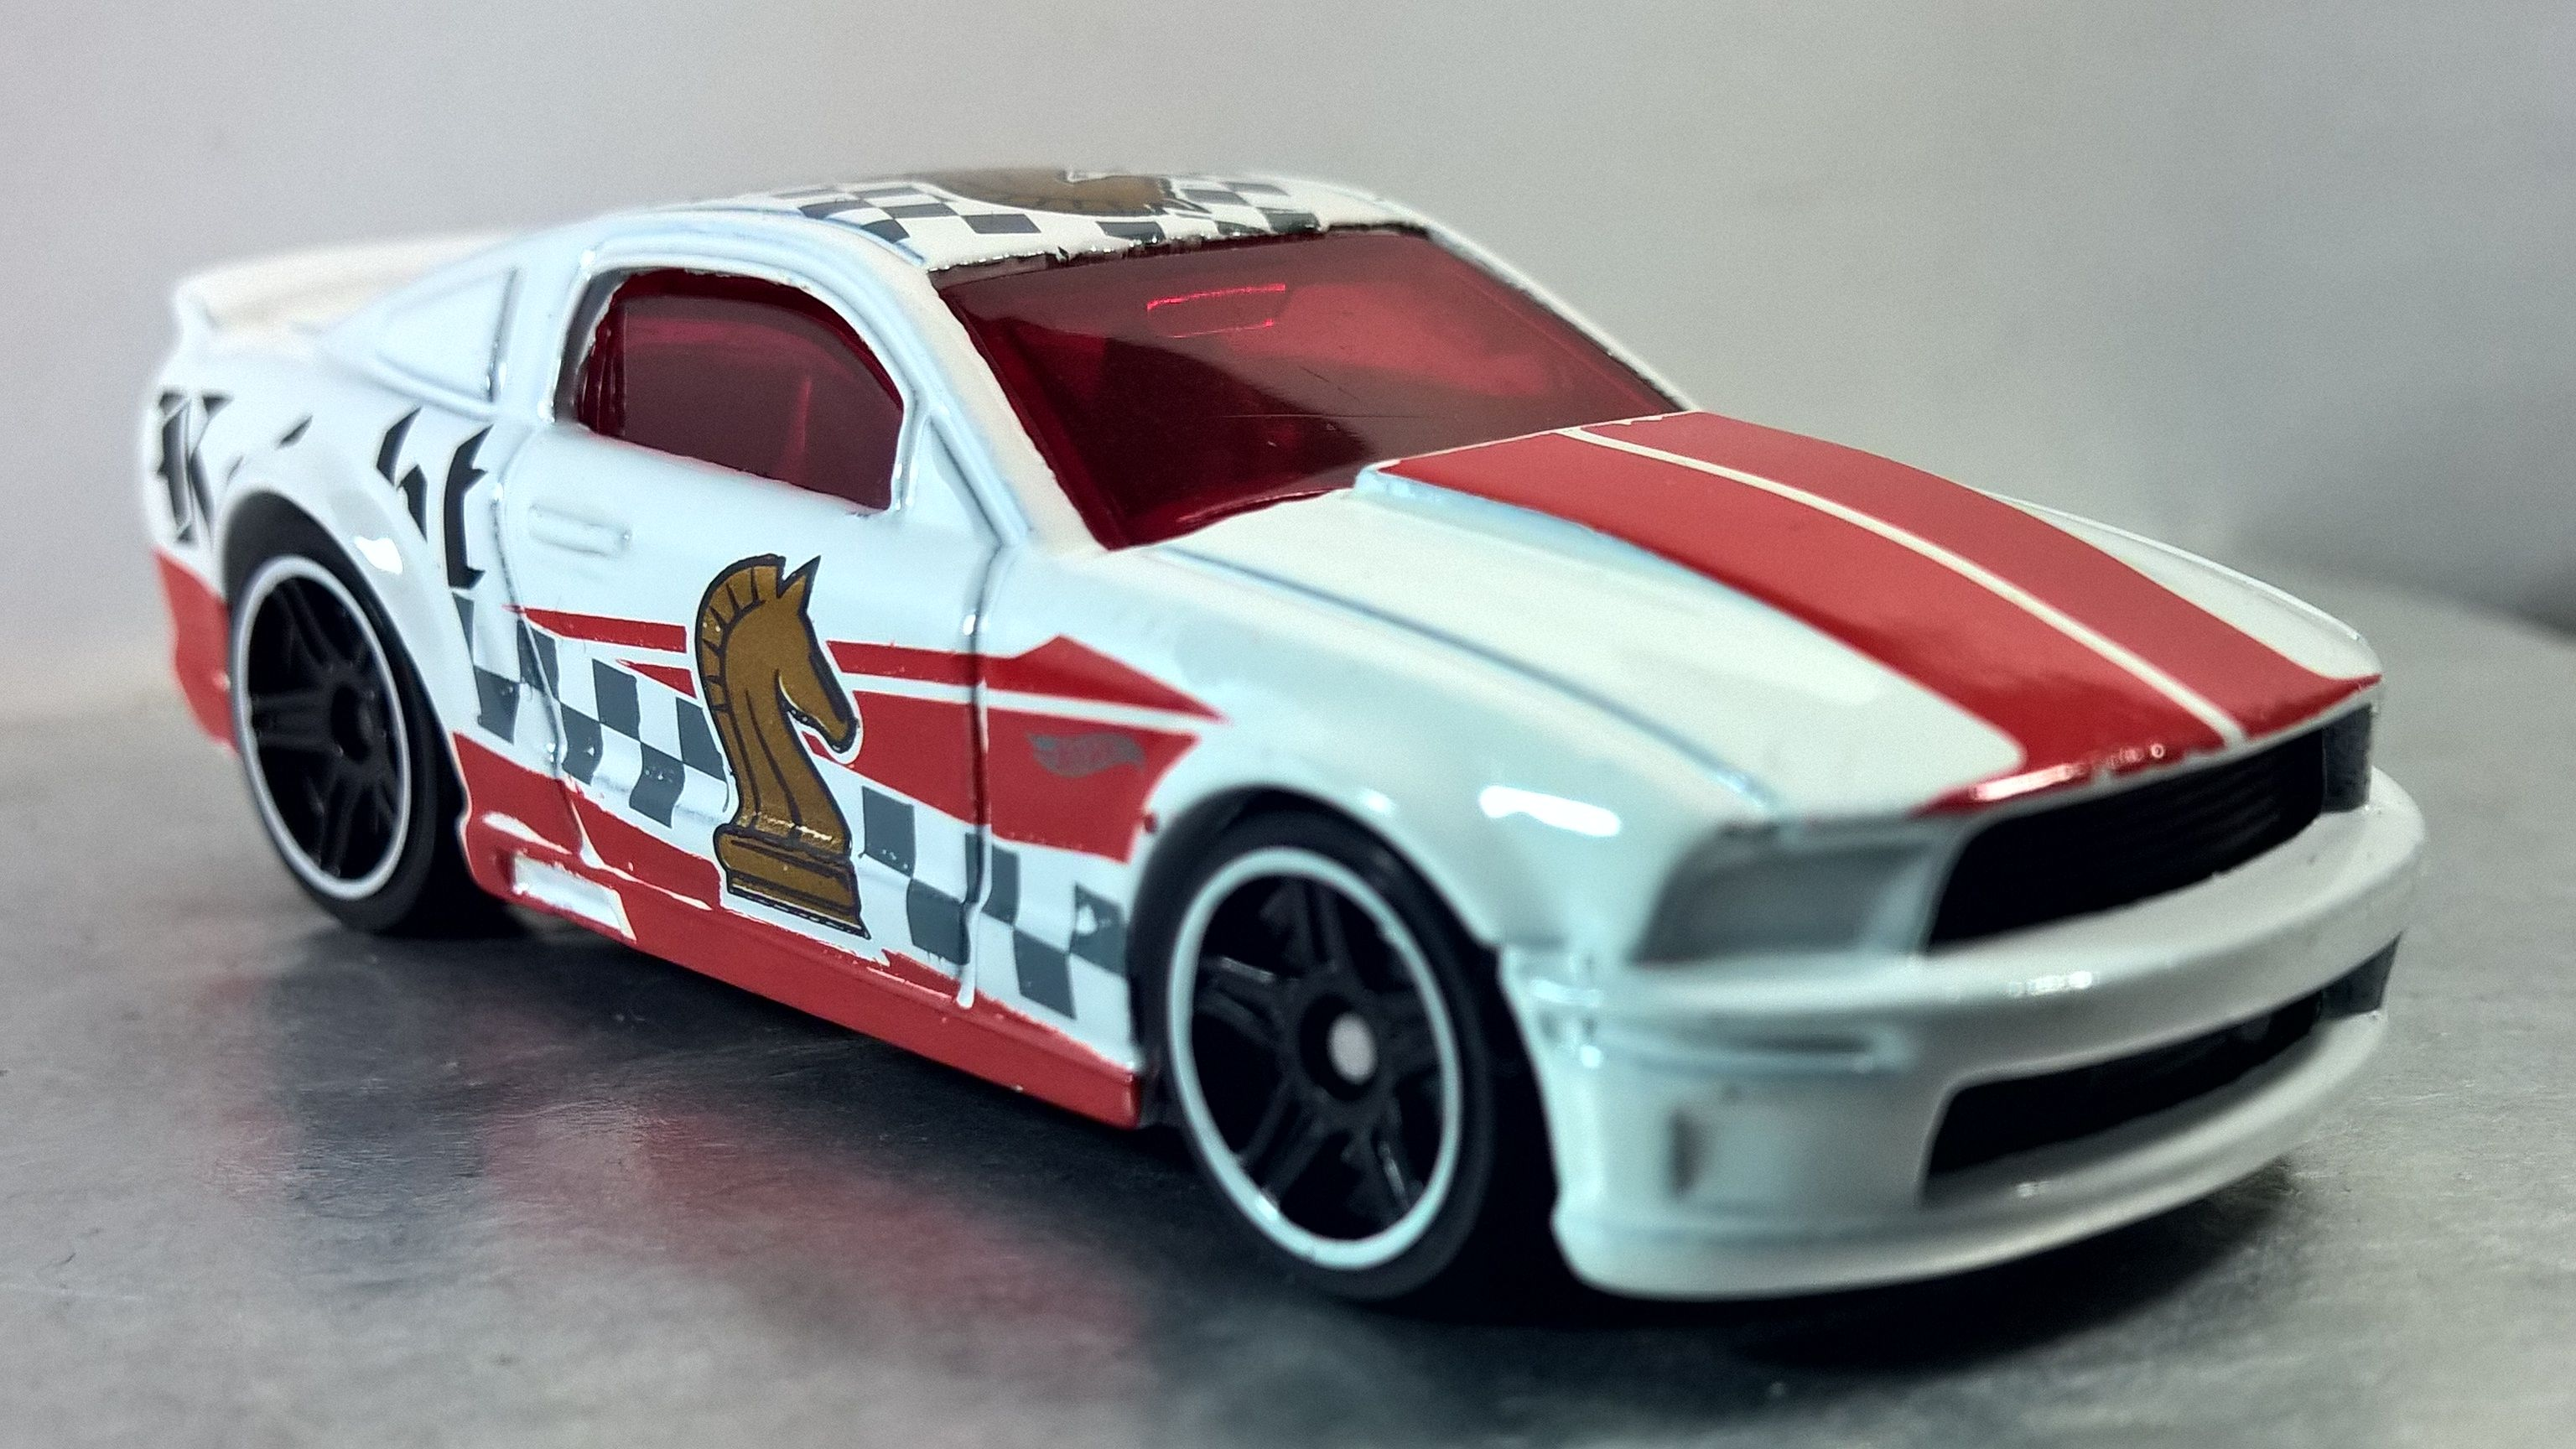 07 Ford Mustang Checkmate Series 2018 6 Hot Wheels Mustang